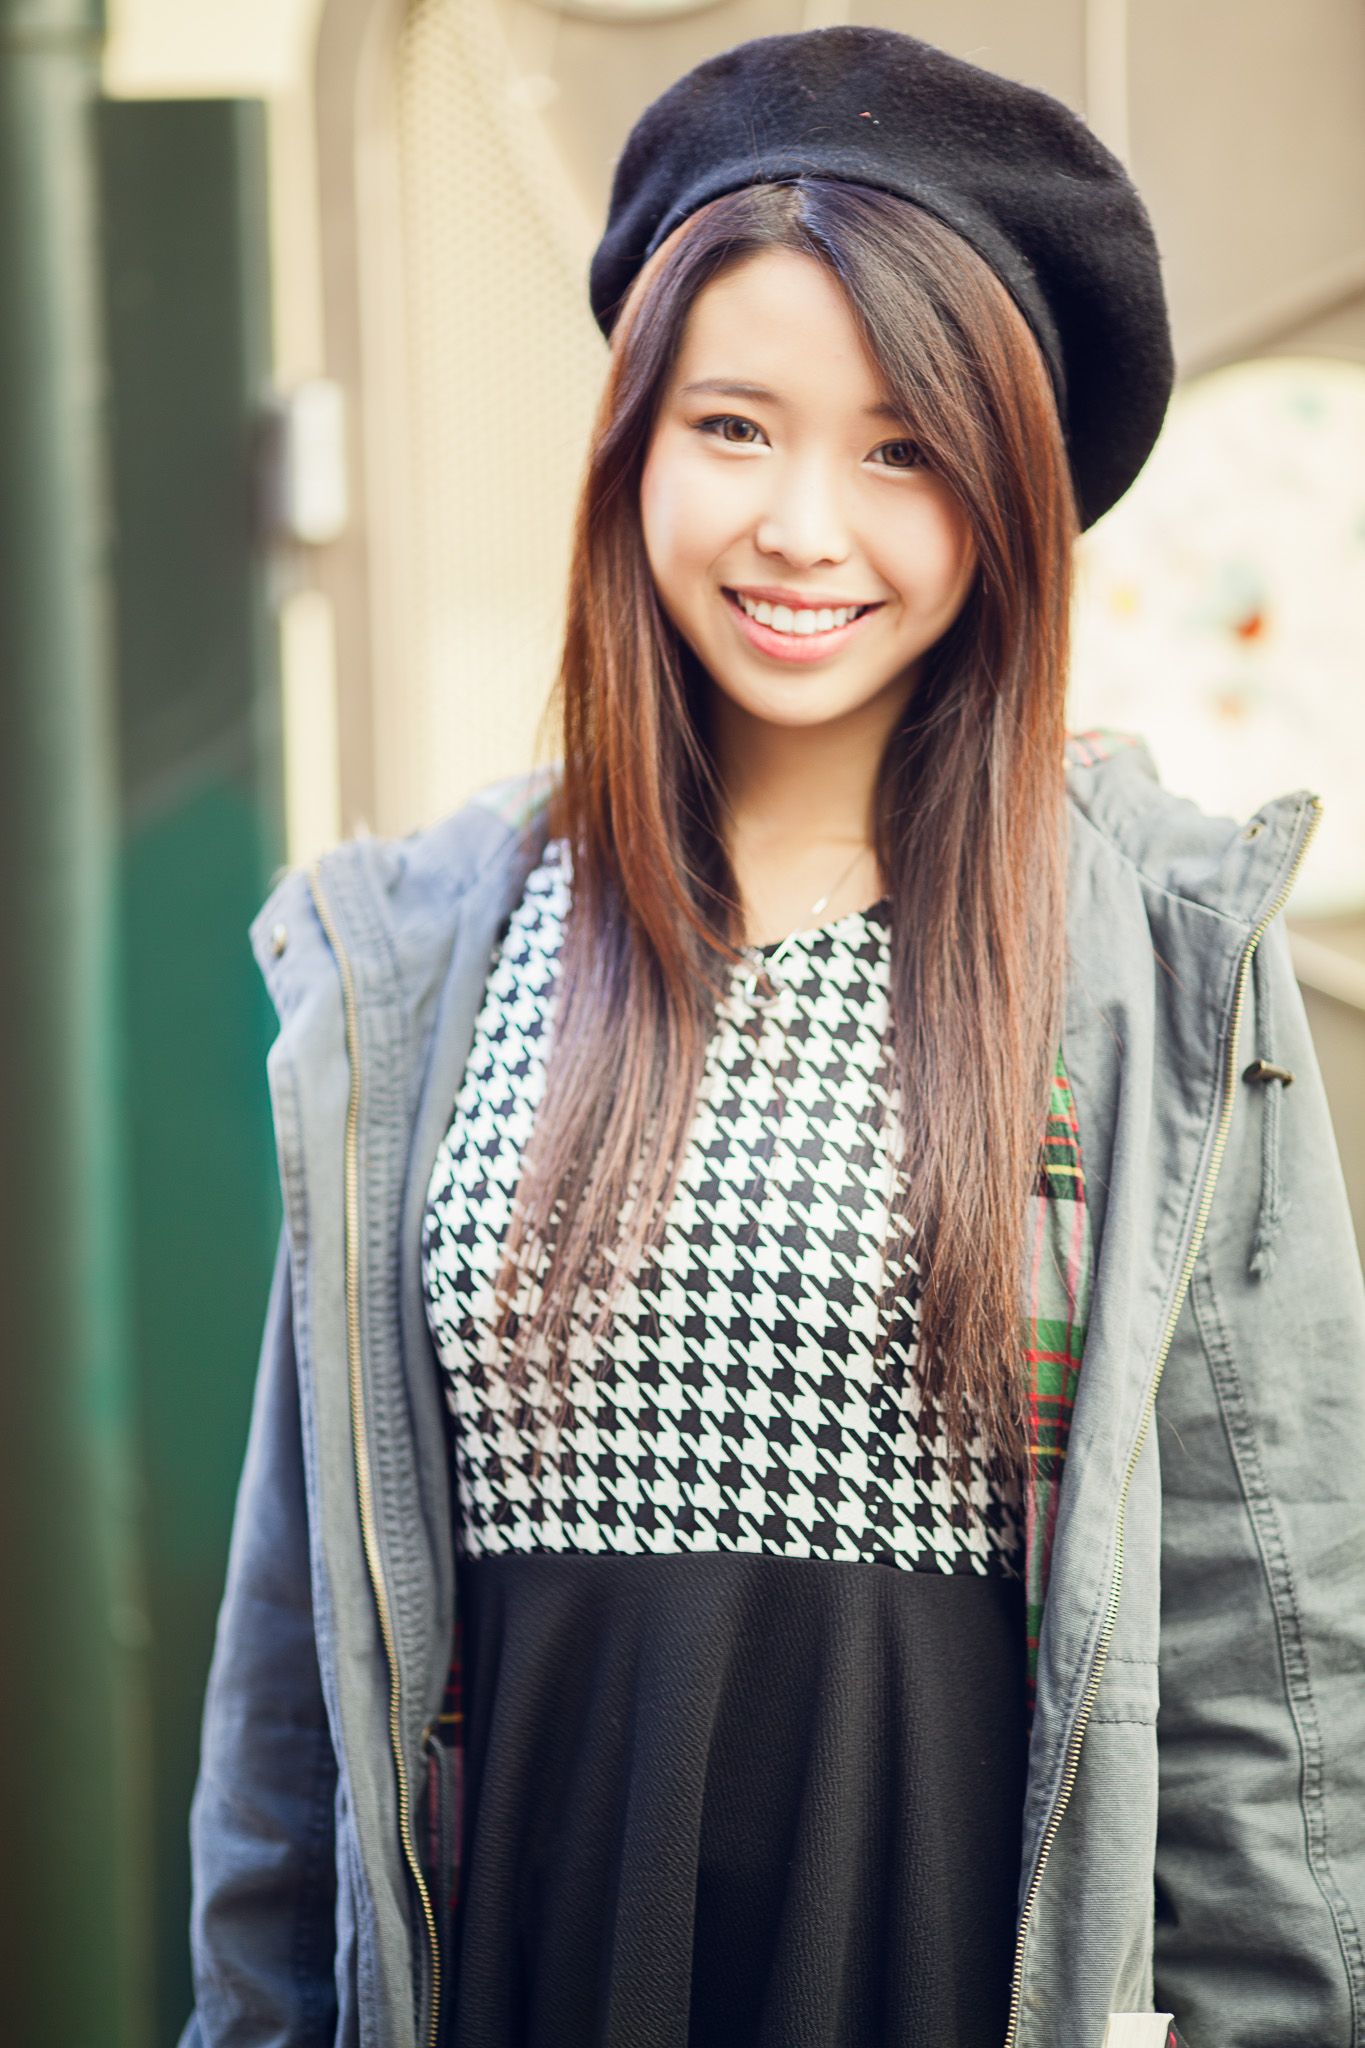 ally gong, asian, author, bay area, bay area blogger, beret, black, book review, buddhism, charlie hebdo, chinese, cute, dress, eastern, fashion, fashion blogger, girl, houndstooth, jacket, je suis charlie, kawaii, kstyle, london, love, marrying buddha, meditation, military, ootd, outfit, prague, pretty, religion, san jose, solidarity, square, tights, trafalgar, ulzzang, wei hui